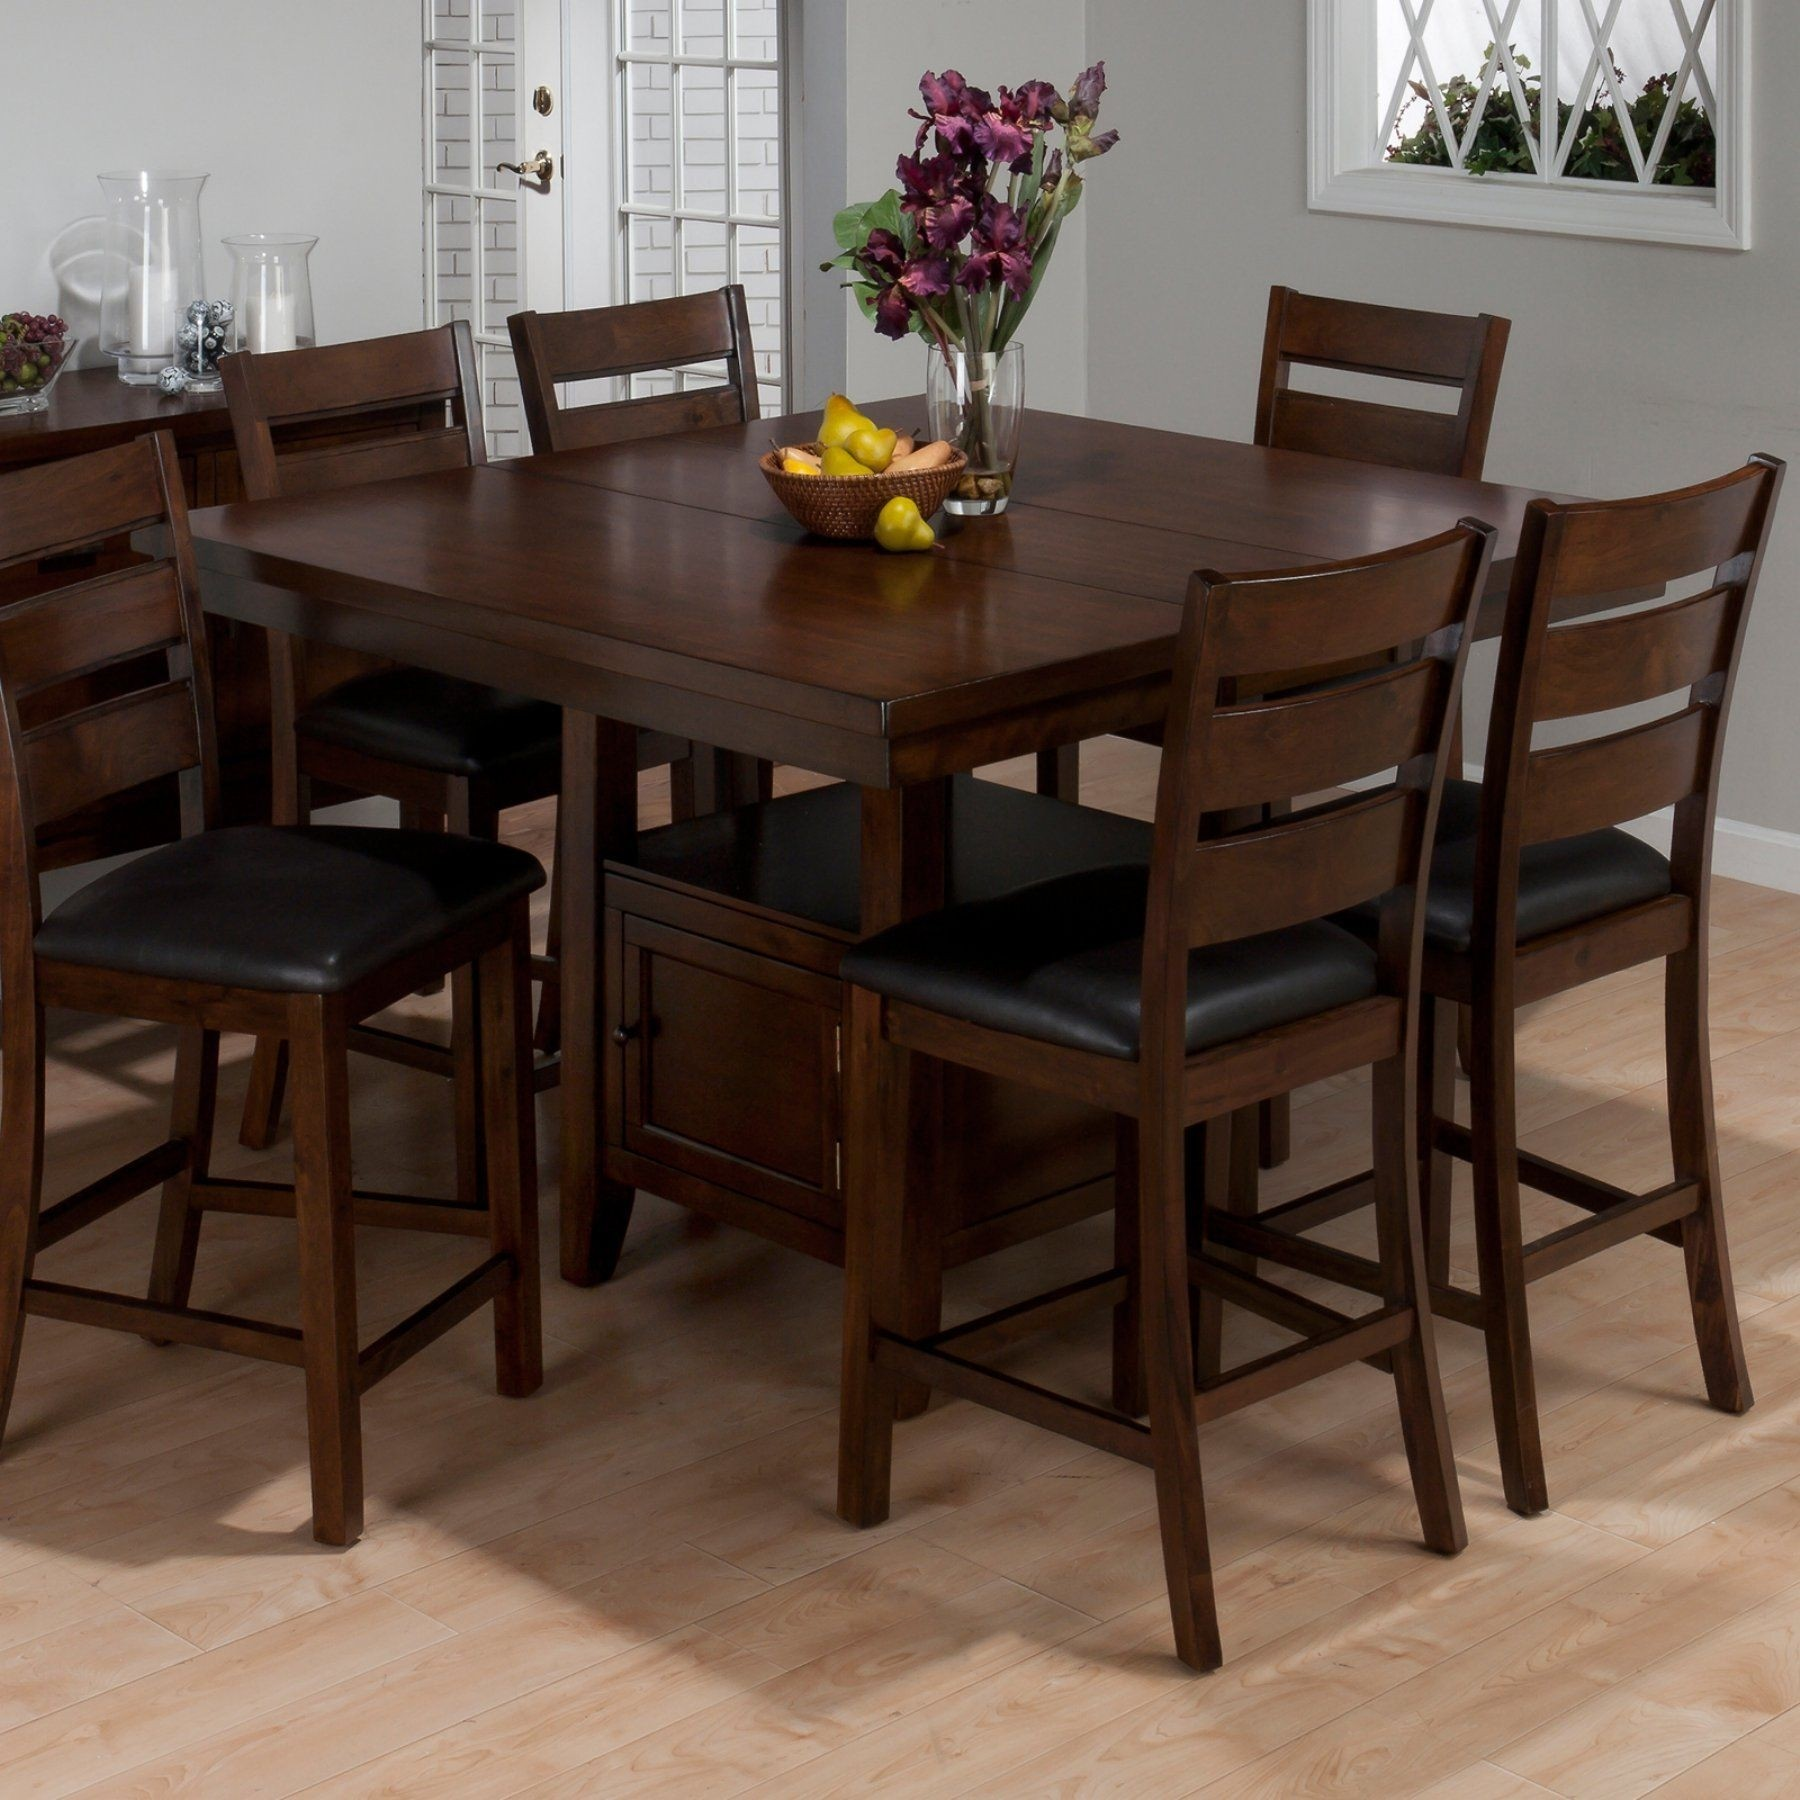 High Quality Counter Height Table Sets With Storage